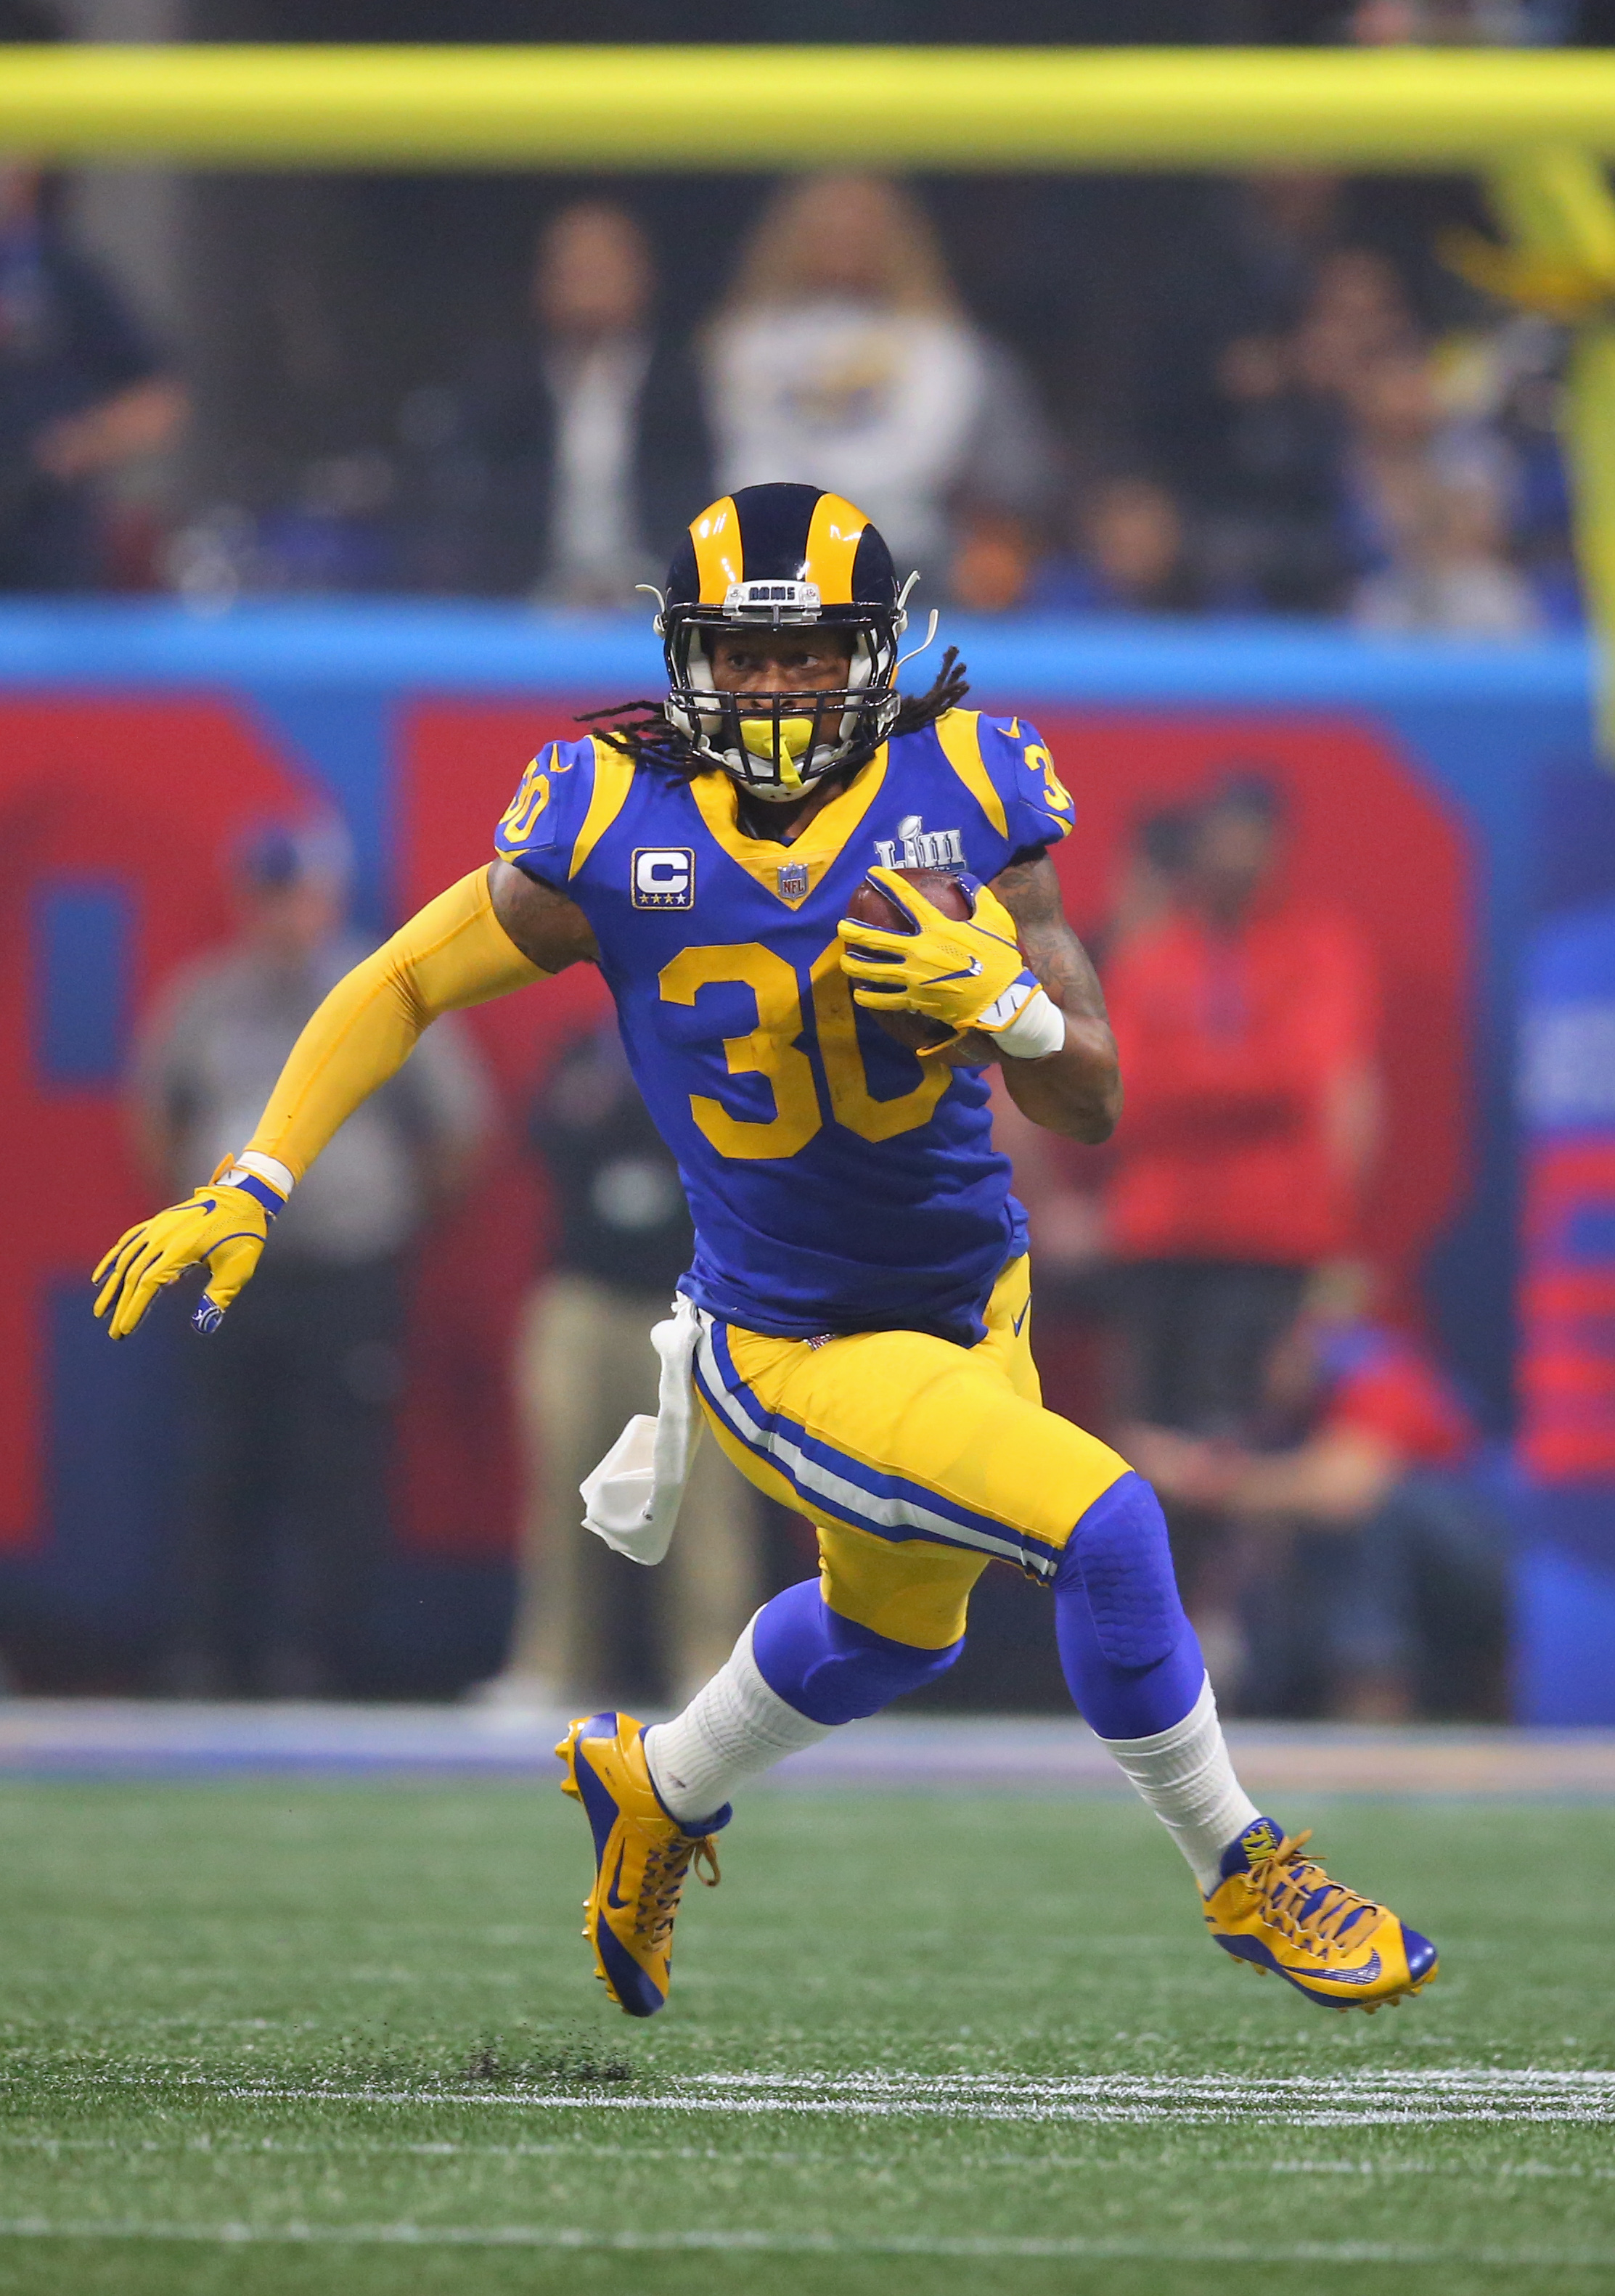 Los Angeles Rams RB Todd Gurley runs against the New England Patriots in Super Bowl LIII, Feb. 3, 2019.